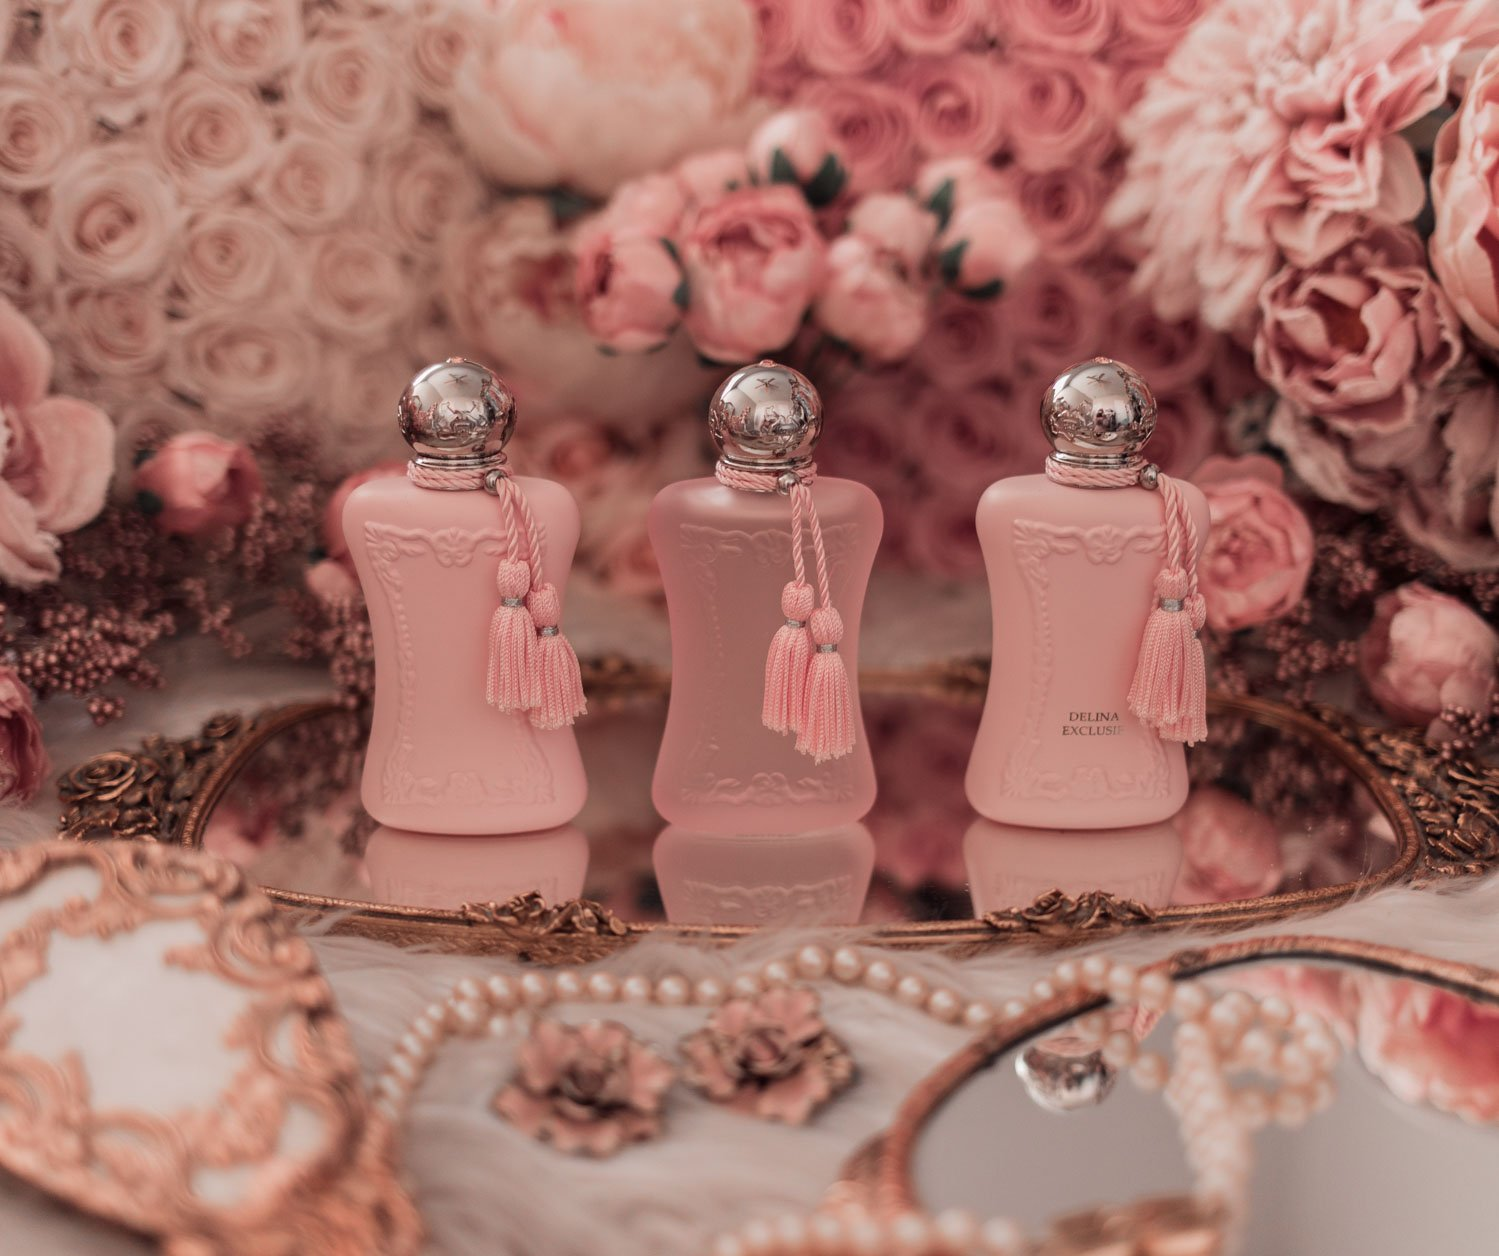 Feminine fashion blogger Elizabeth Hugen of Lizzie in Lace shares the Best Mother's Day gift ideas in her Mother's Day gift guide including the Parfums de Marly Delina collection